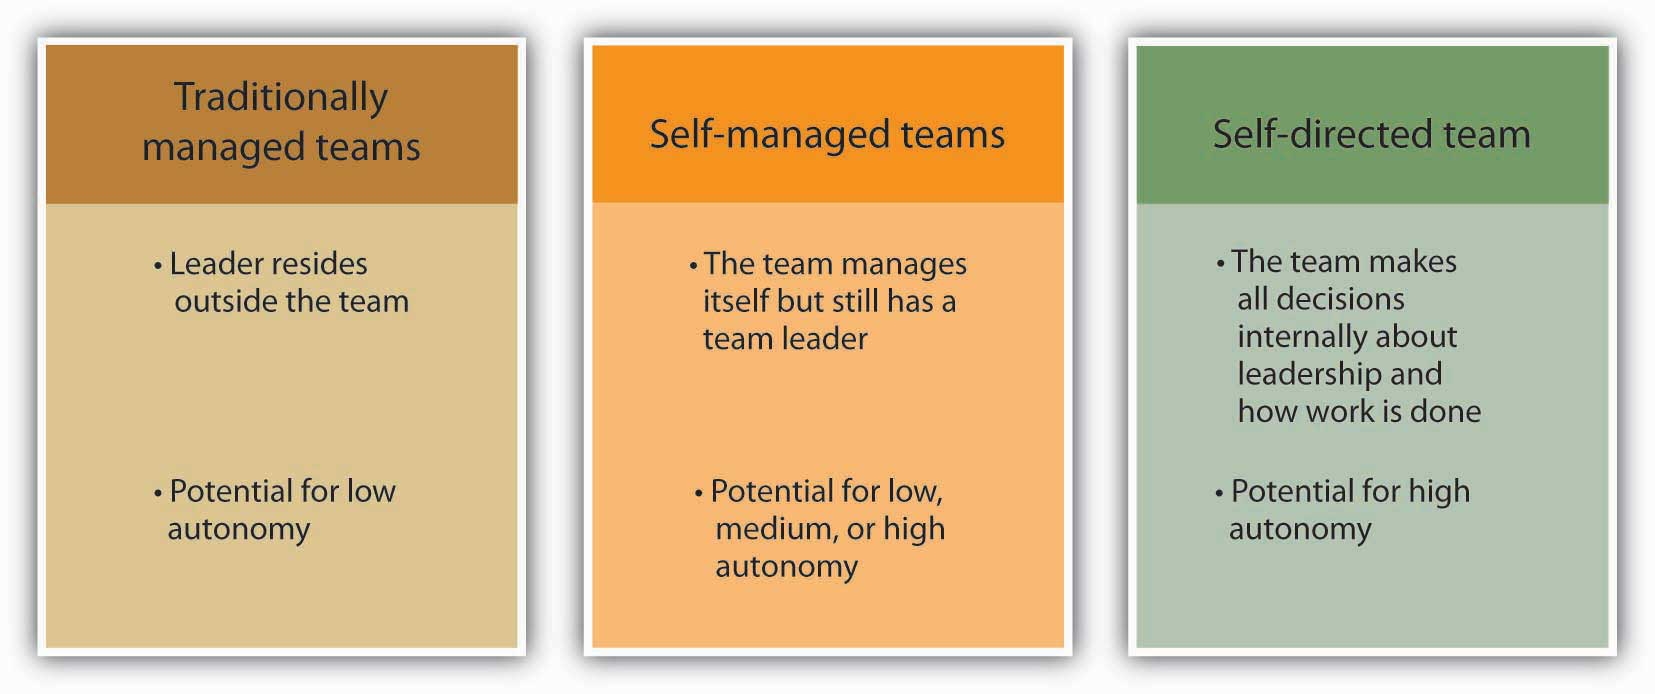 managment skills essay Personal assessment of management skills (pams) (self) step 1: to get an overall profile of your level of skill competence, respond to the following statements using the rating scale below.